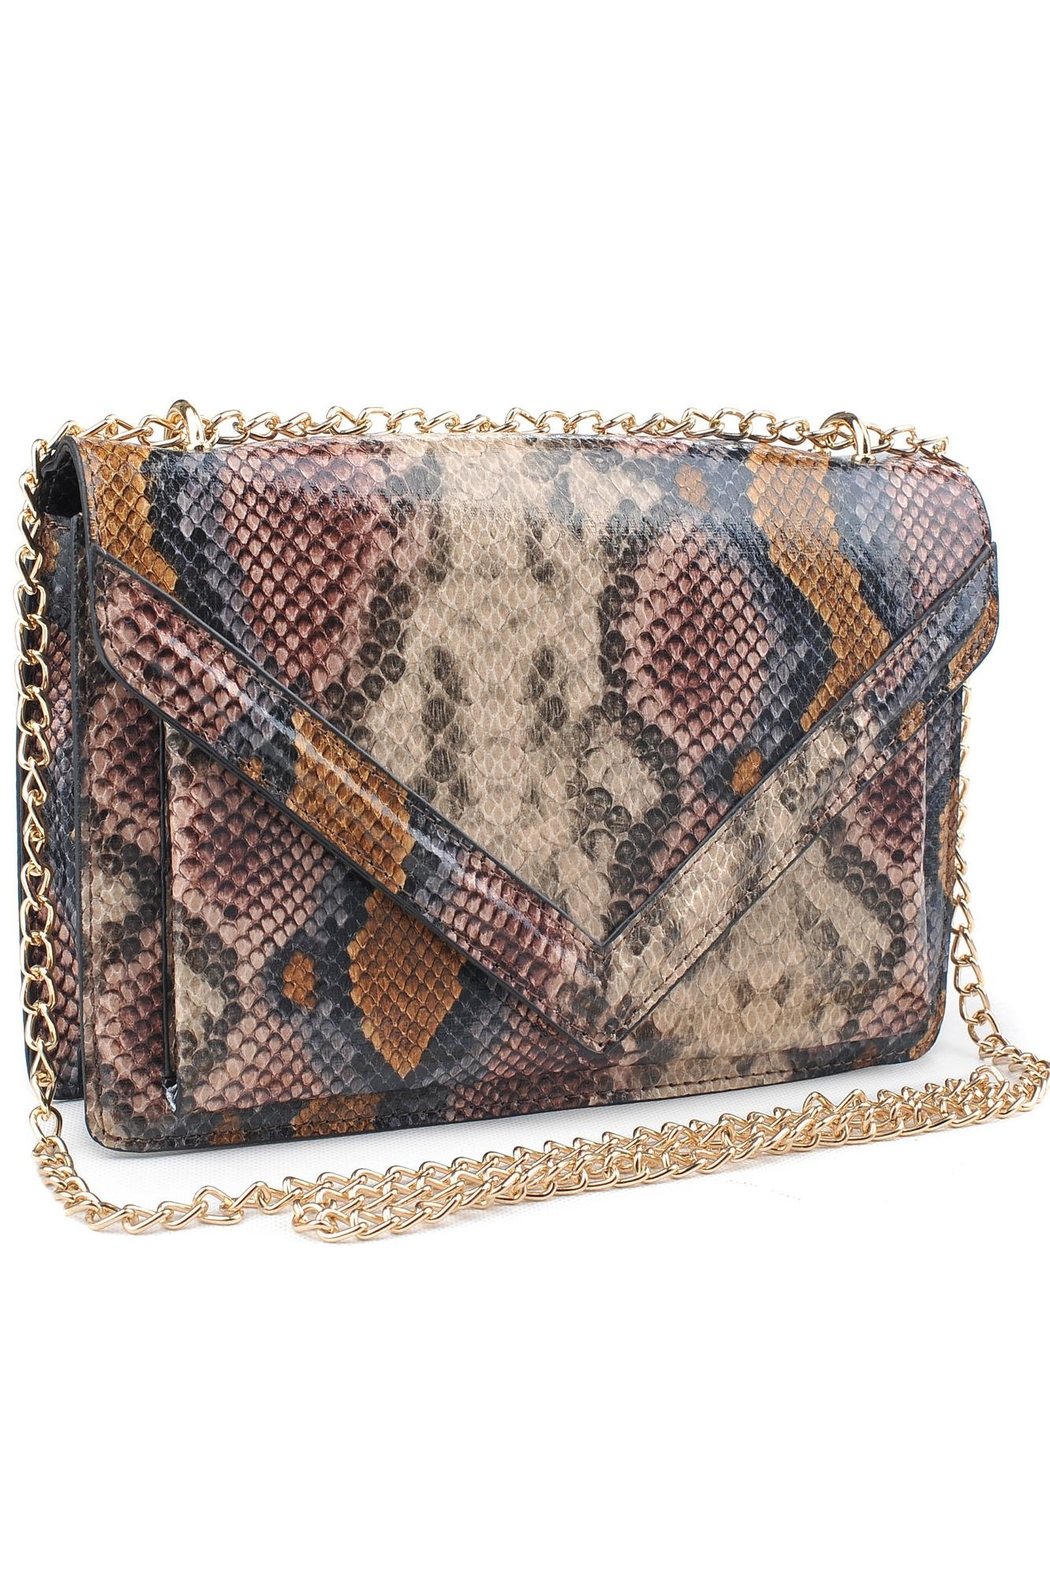 Urban Expressions Adalynn Python Bag - Front Full Image